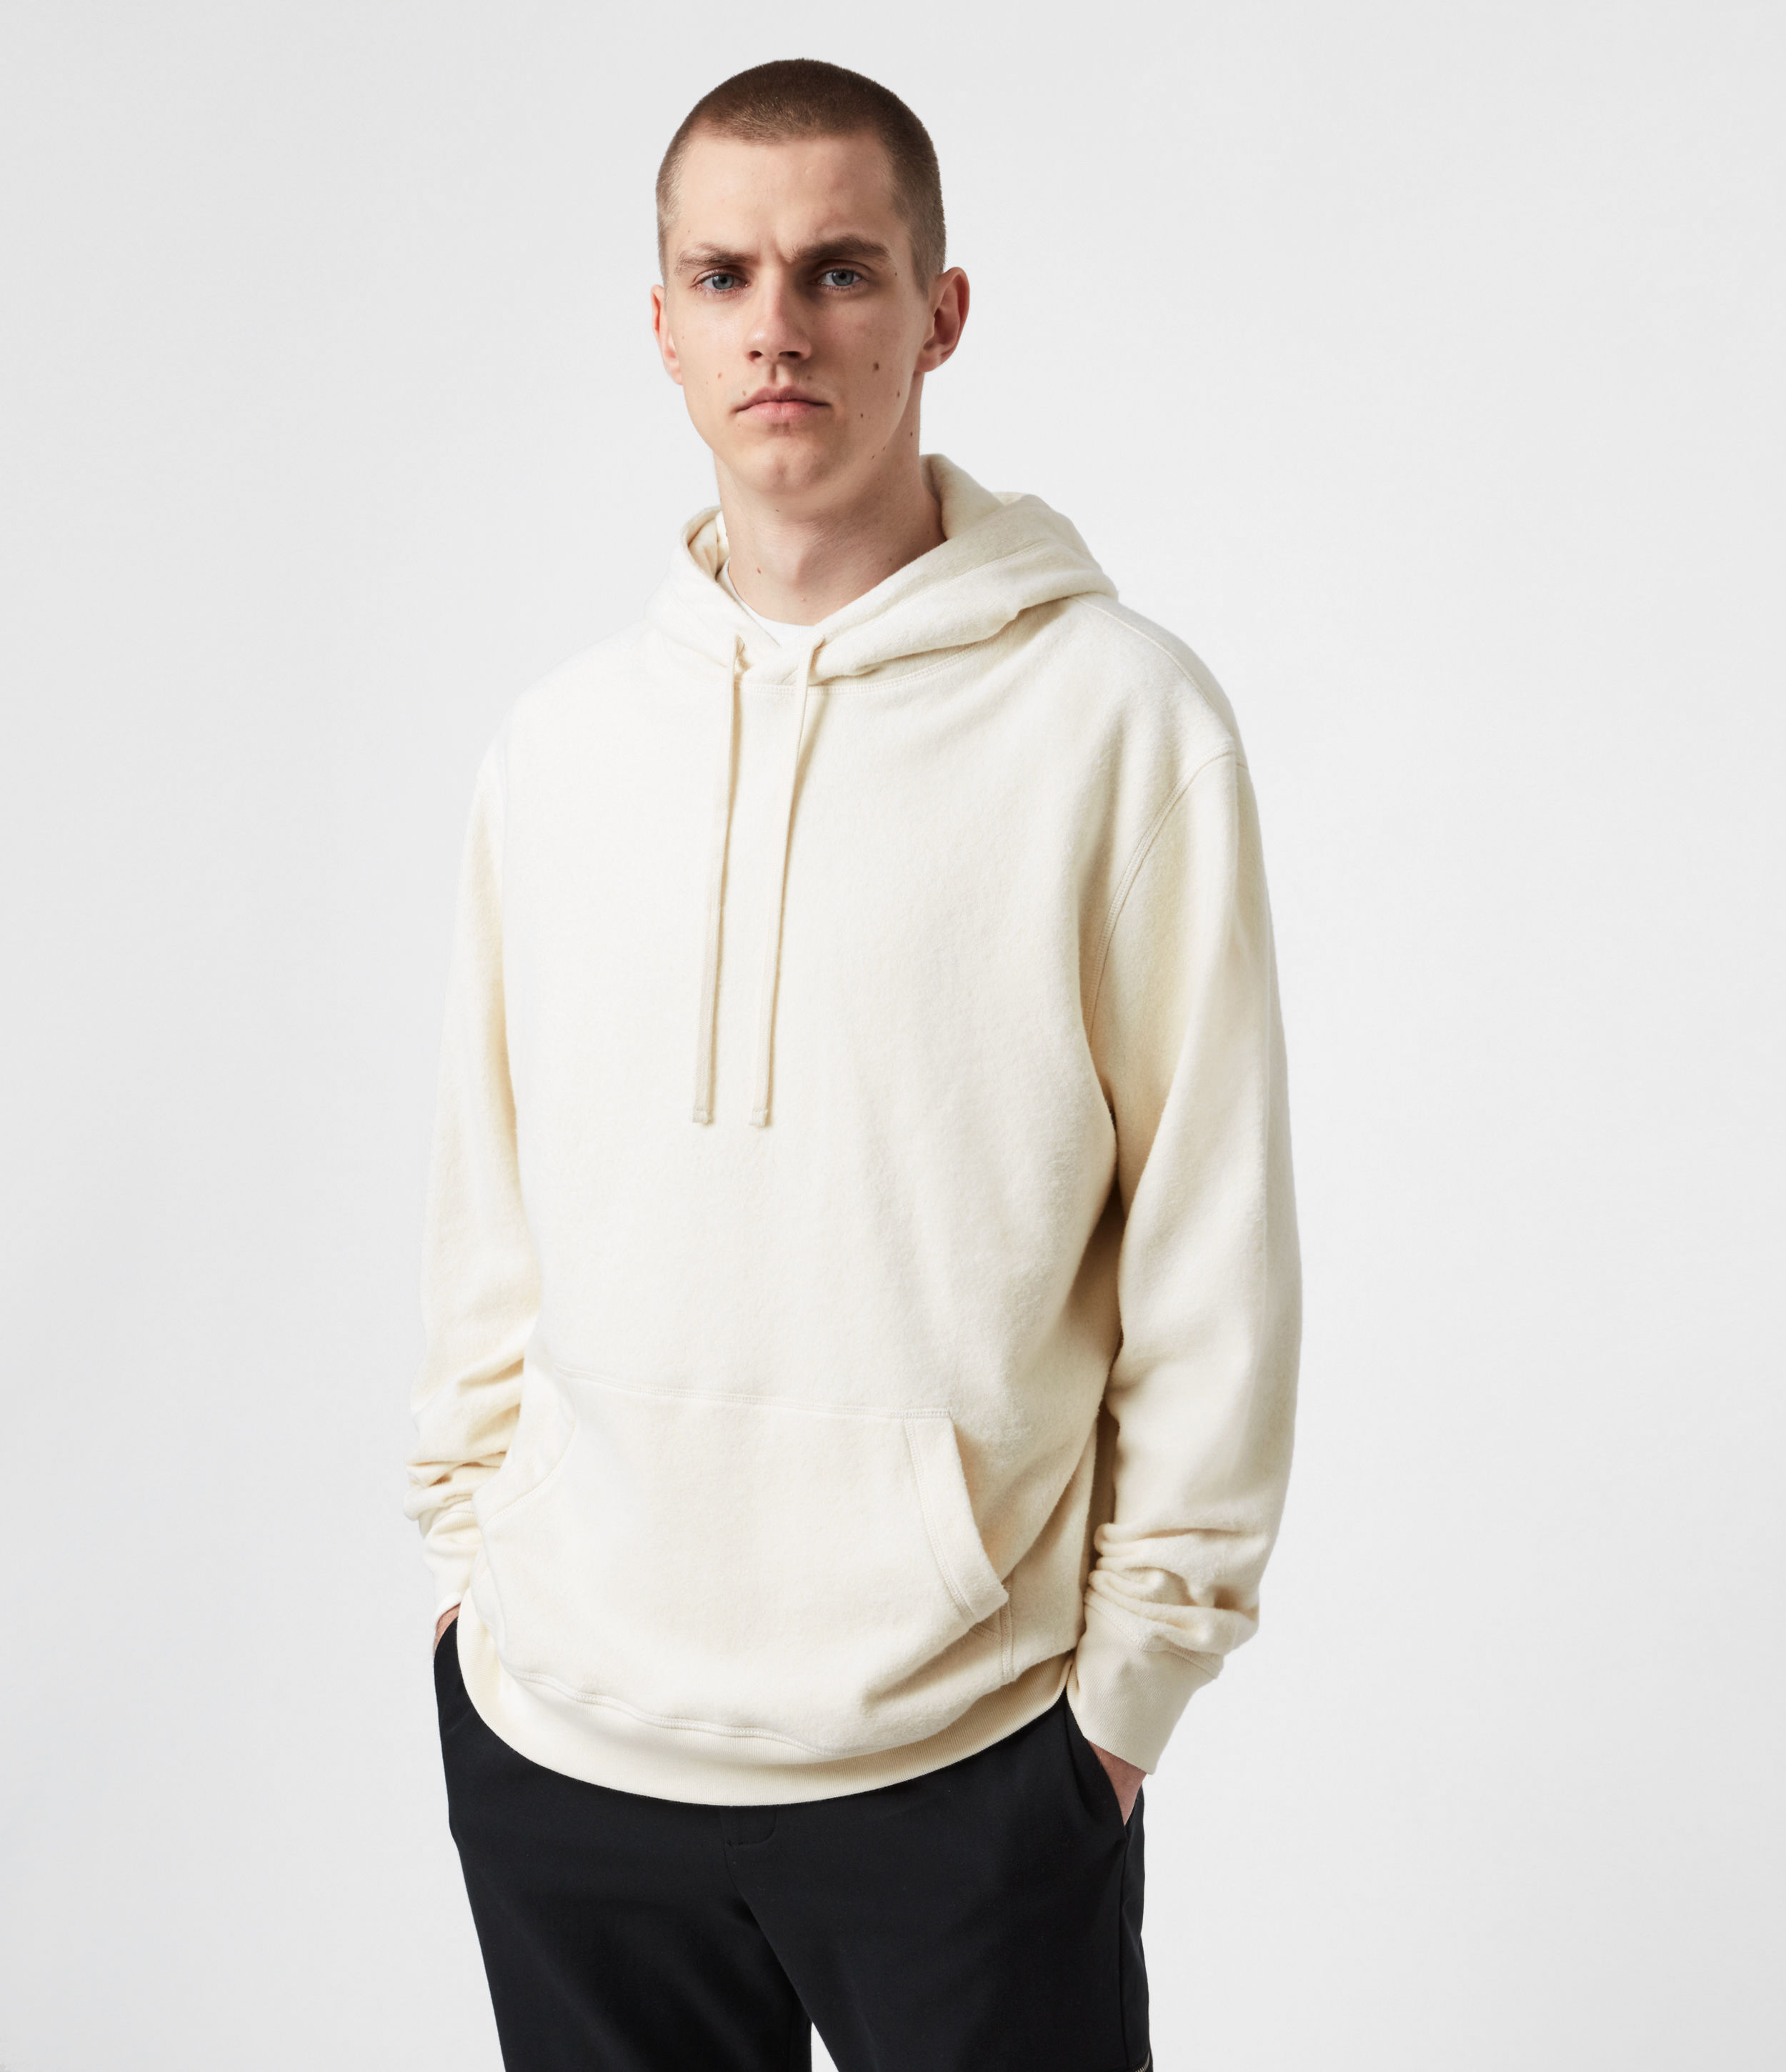 AllSaints Men's Cotton Relaxed Fit Axel Pullover Hoodie, Cream, Size: XL